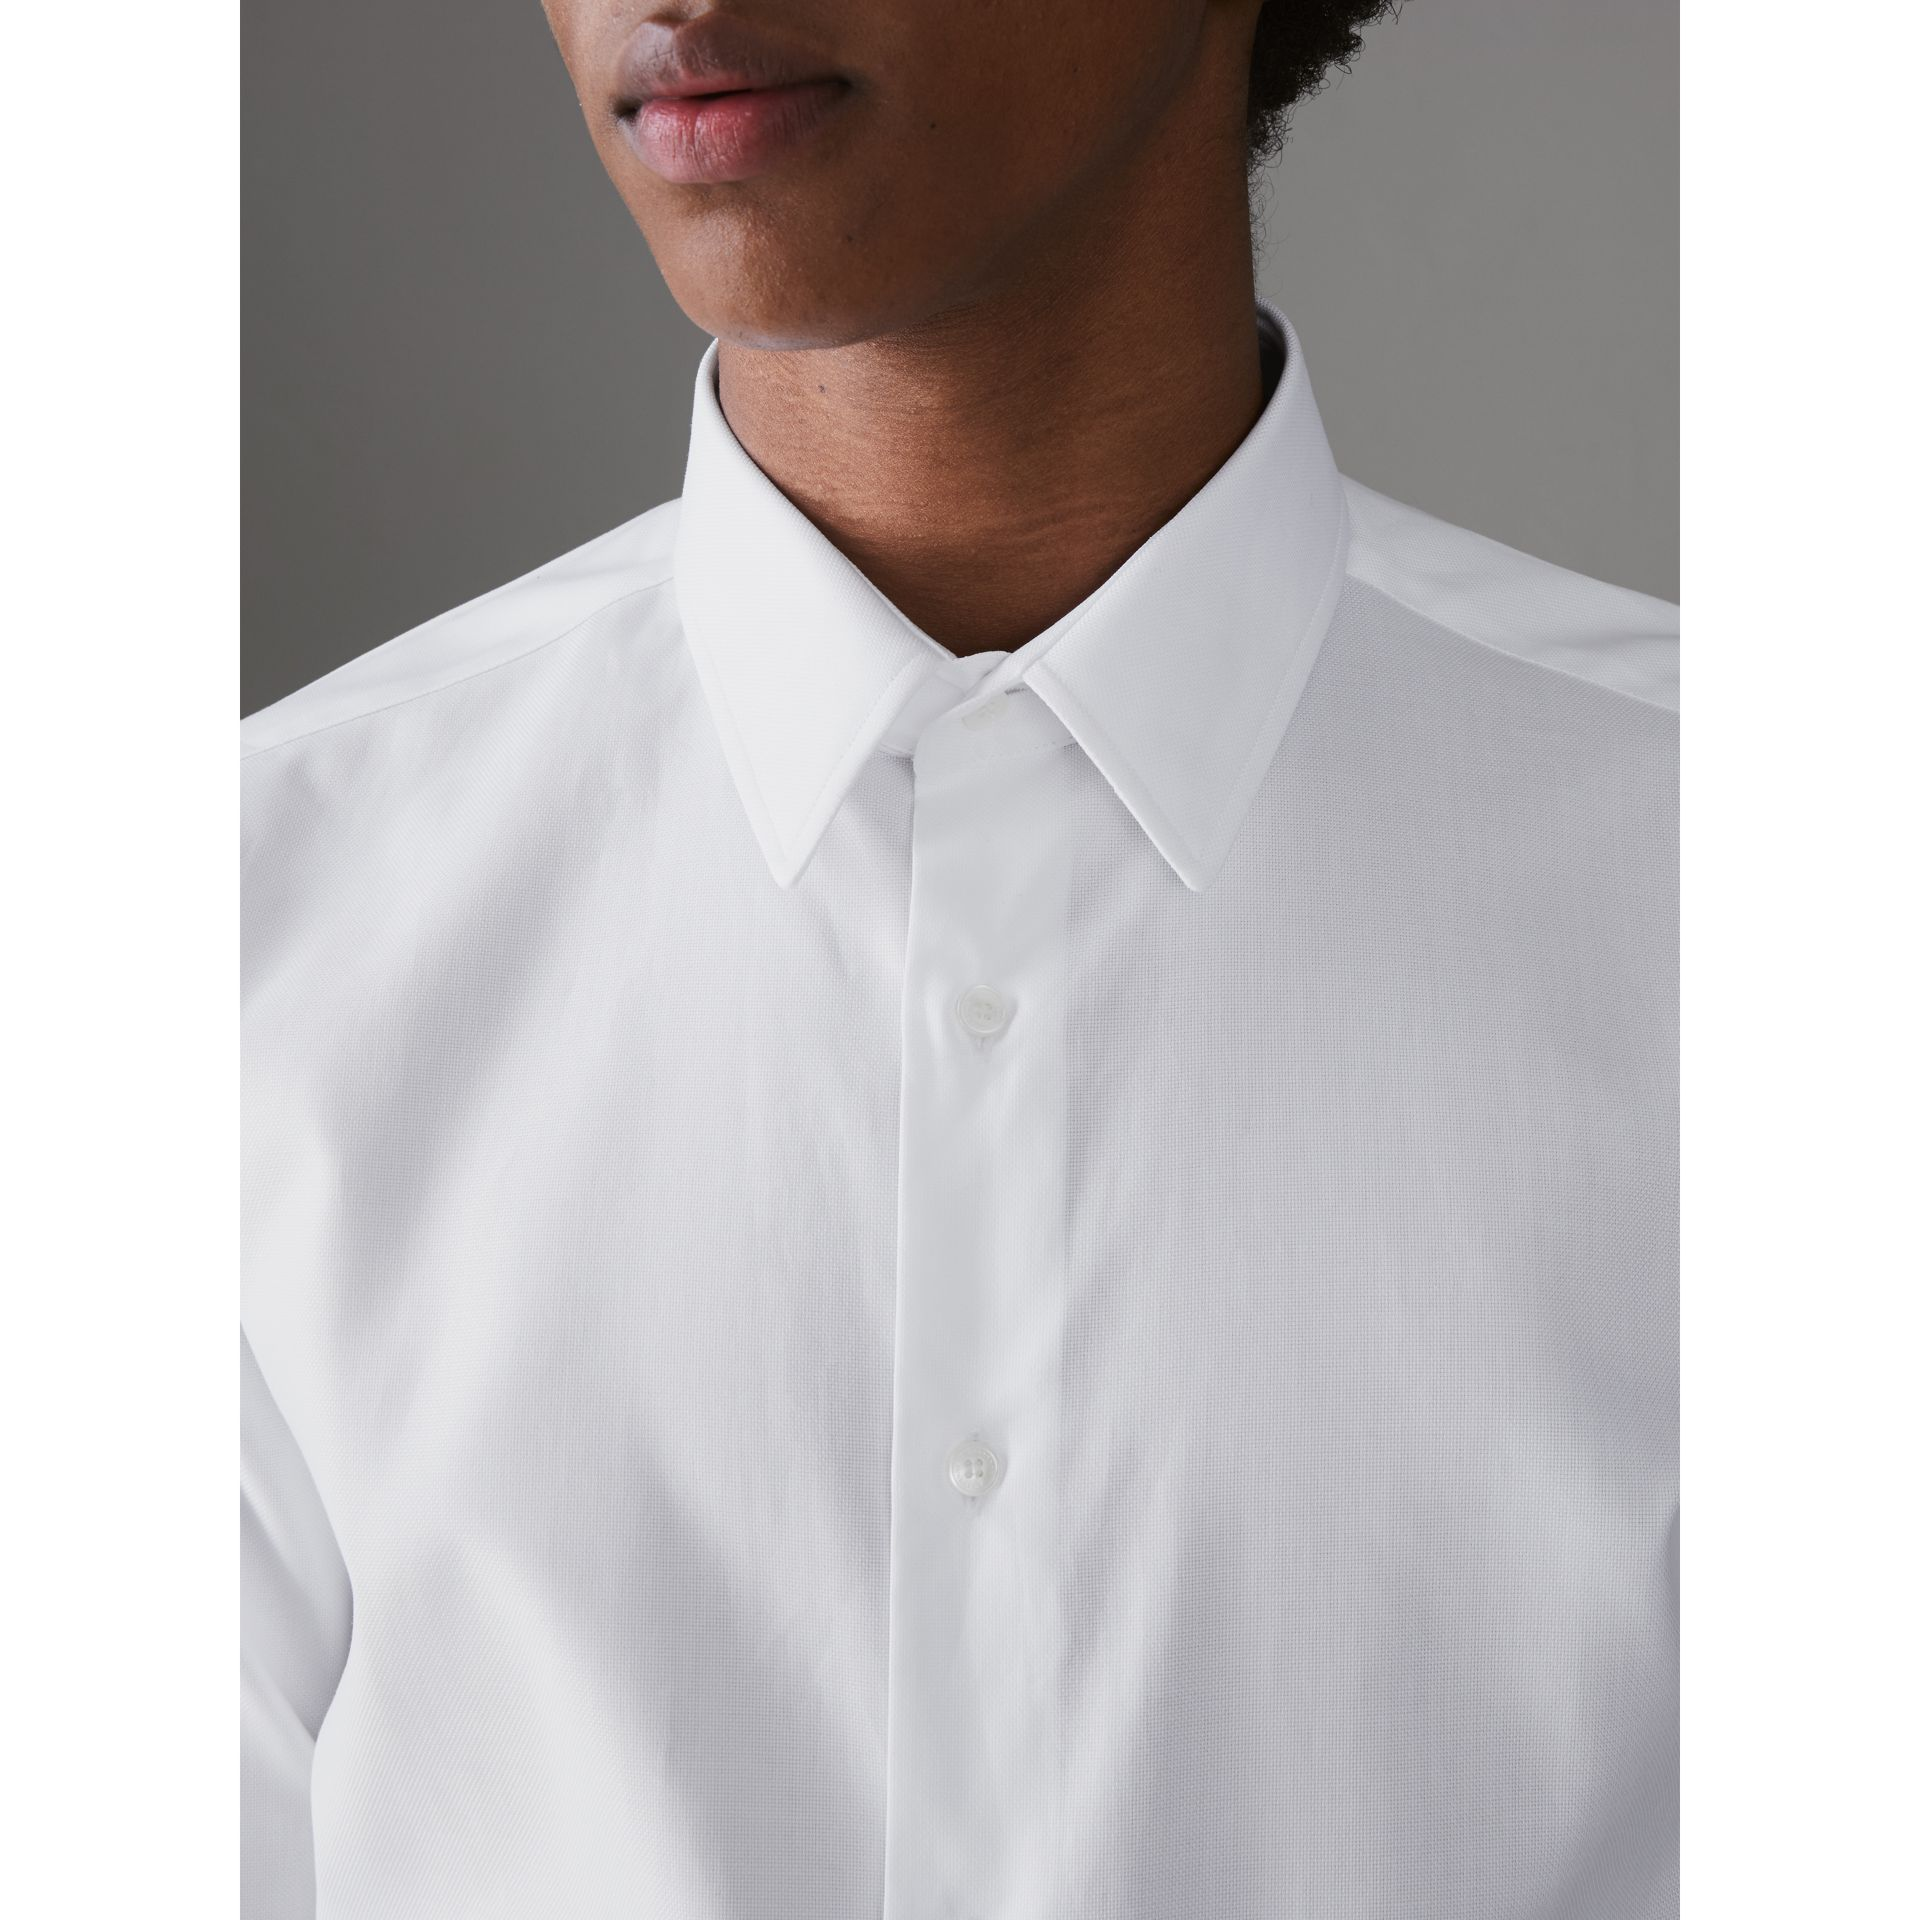 Modern Fit Cotton Shirt in White - Men | Burberry United States - gallery image 1